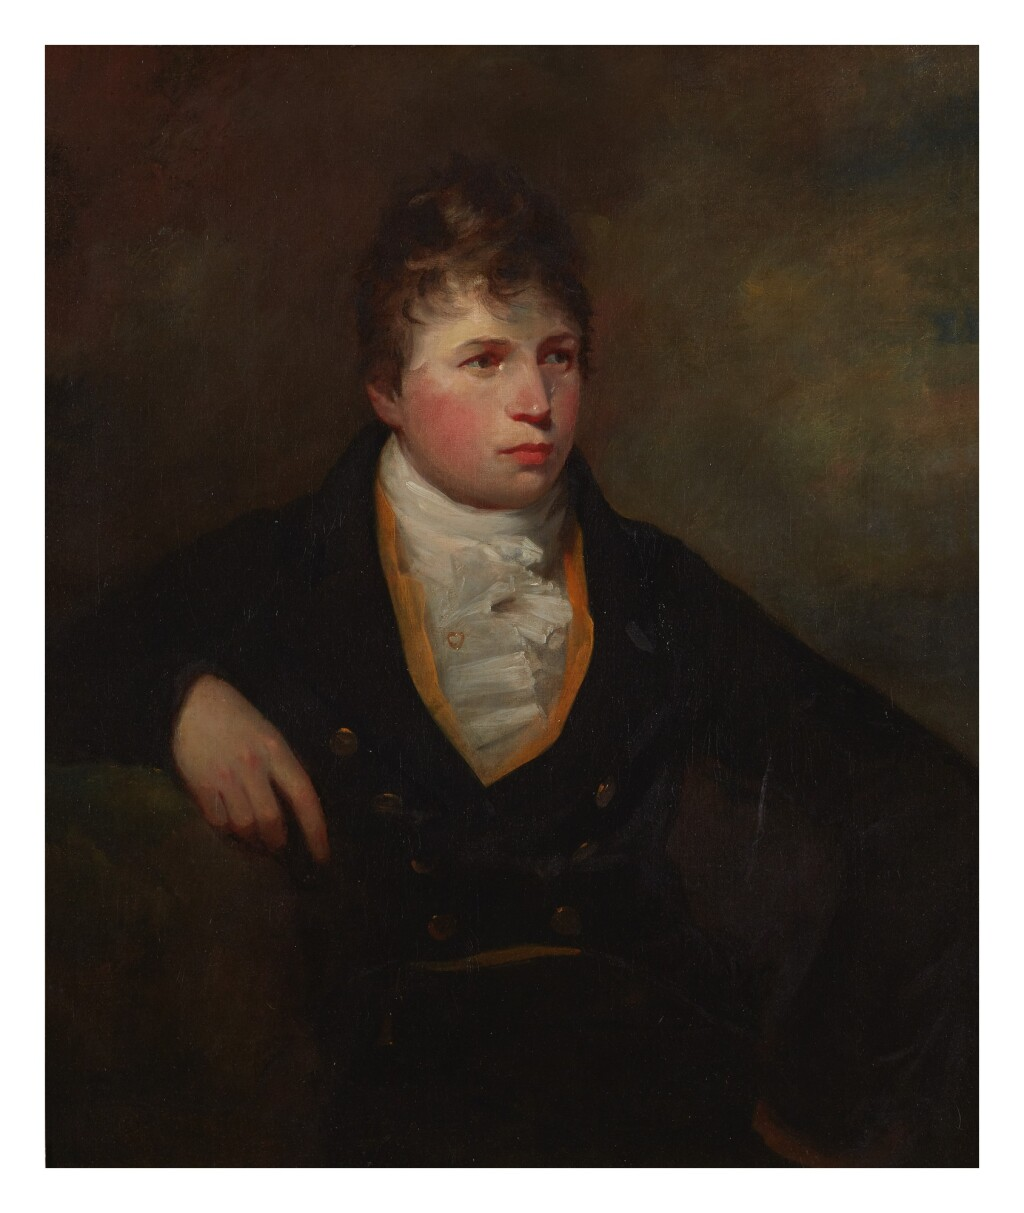 SIR DAVID WILKIE, R.A.   PORTRAIT OF ALEXANDER AITKEN, HALF LENGTH, WEARING A DARK COAT WITH A BUFF WAISTCOAT AND A WHITE STOCK